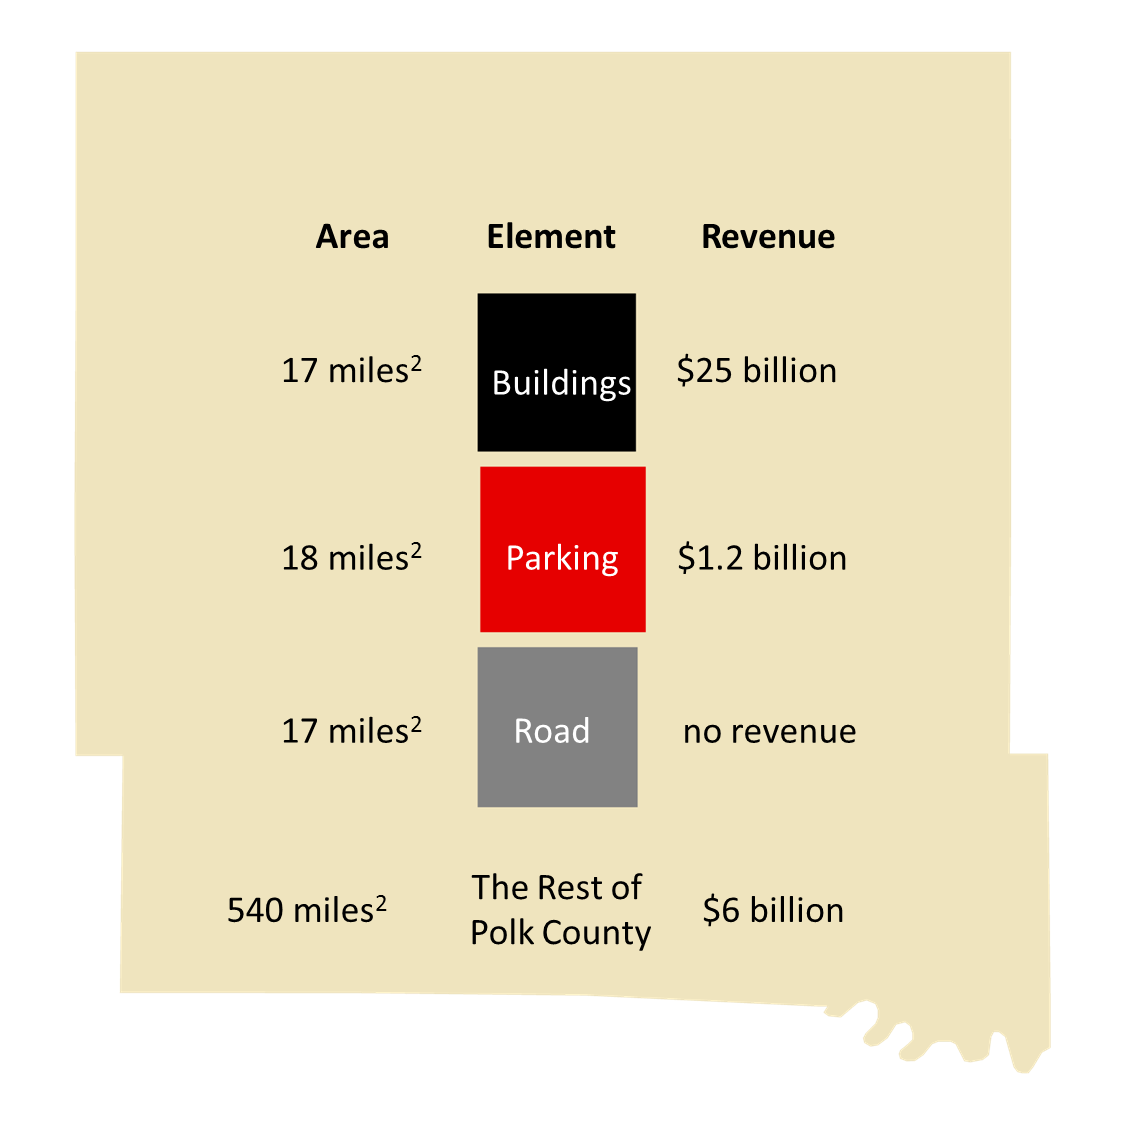 2/3rds of Des Moines' developed land is for cars but only generates a minuscule amount of revenue.